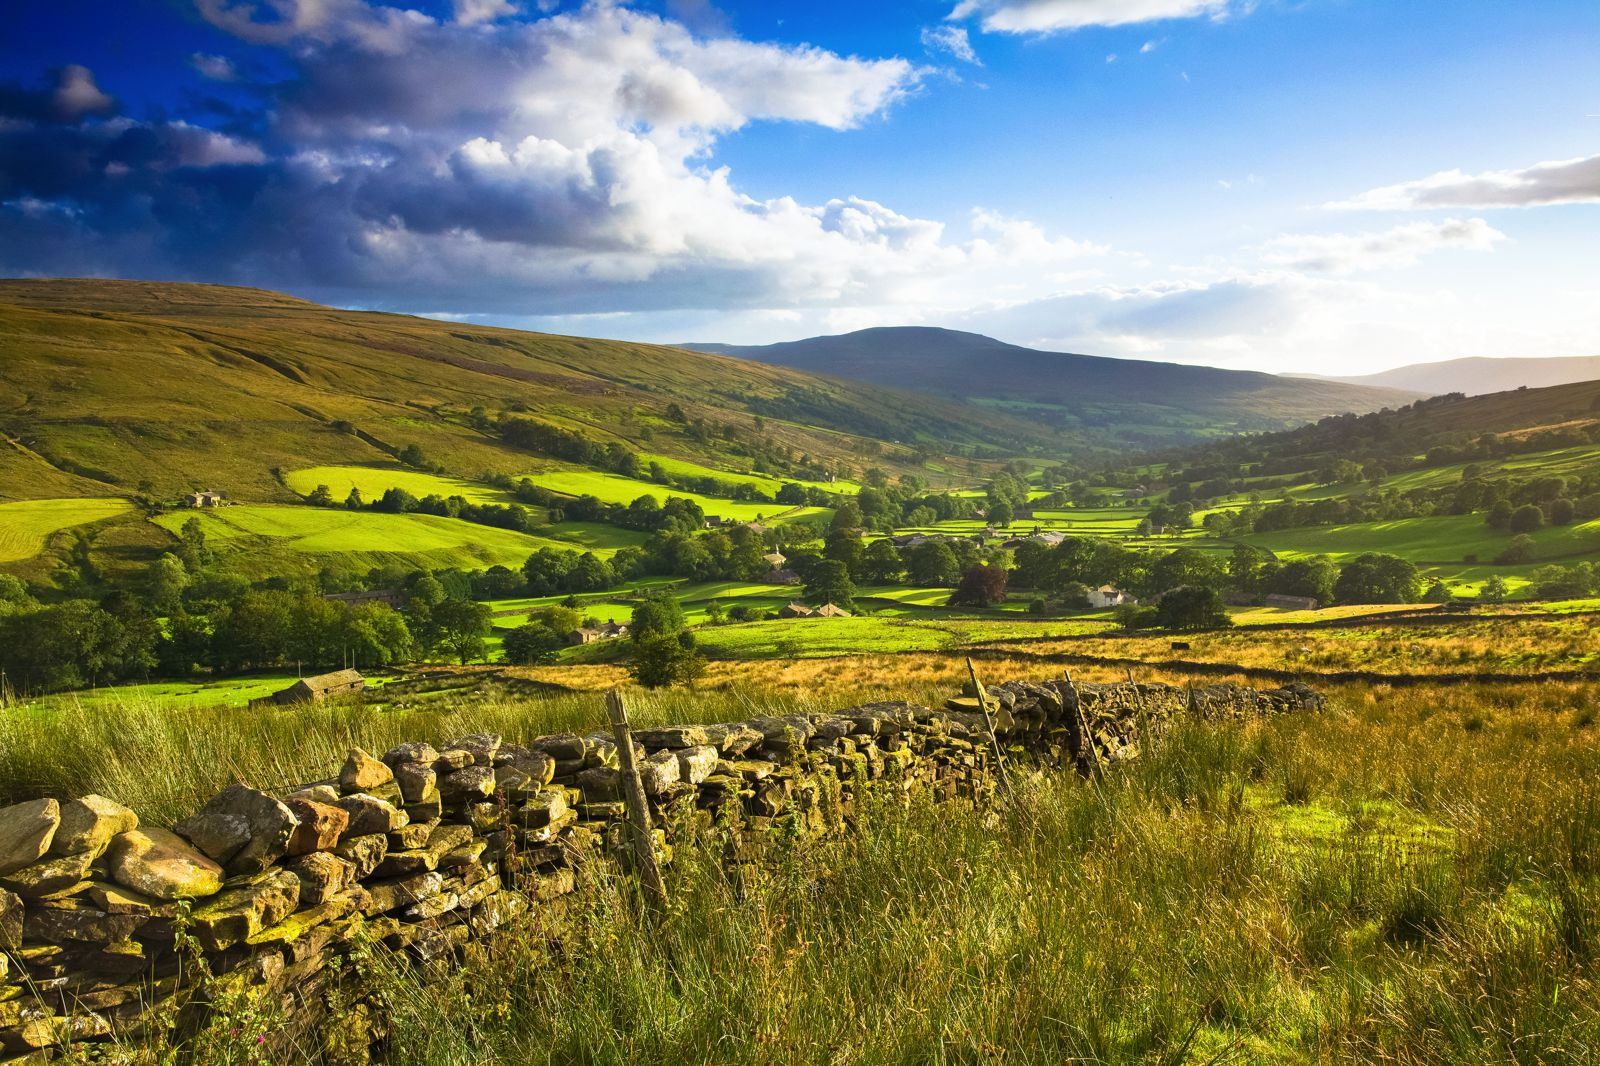 The Rolling Hills Of Yorkshire... 11 Photos That Will Make You Want To Visit Yorkshire! (7)